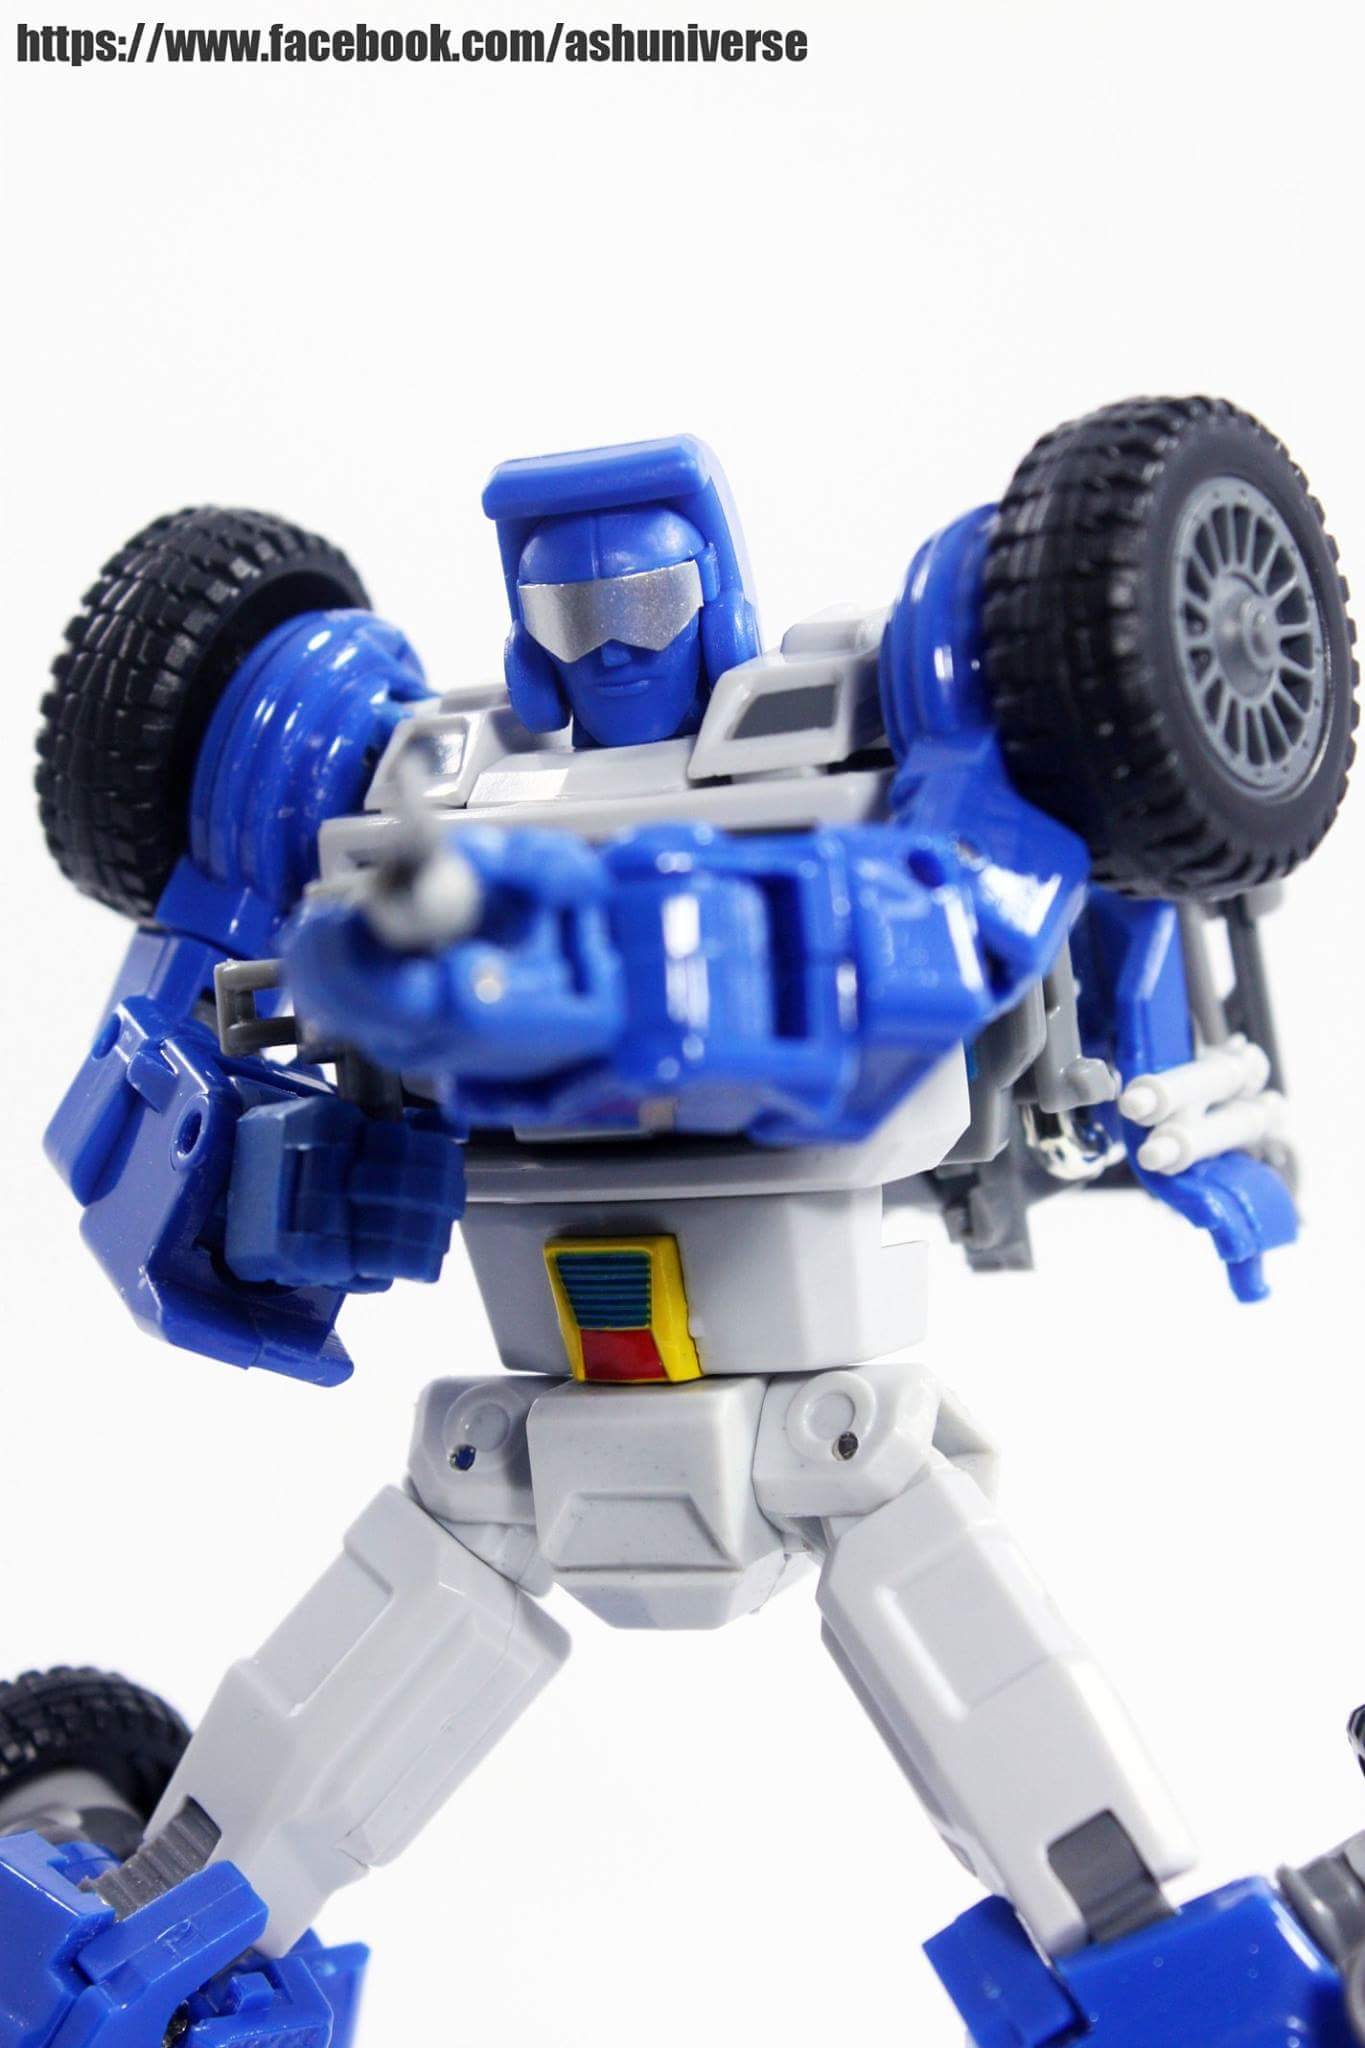 [X-Transbots] Produit Tiers - Minibots MP - Gamme MM - Page 6 Y5LNcYrN